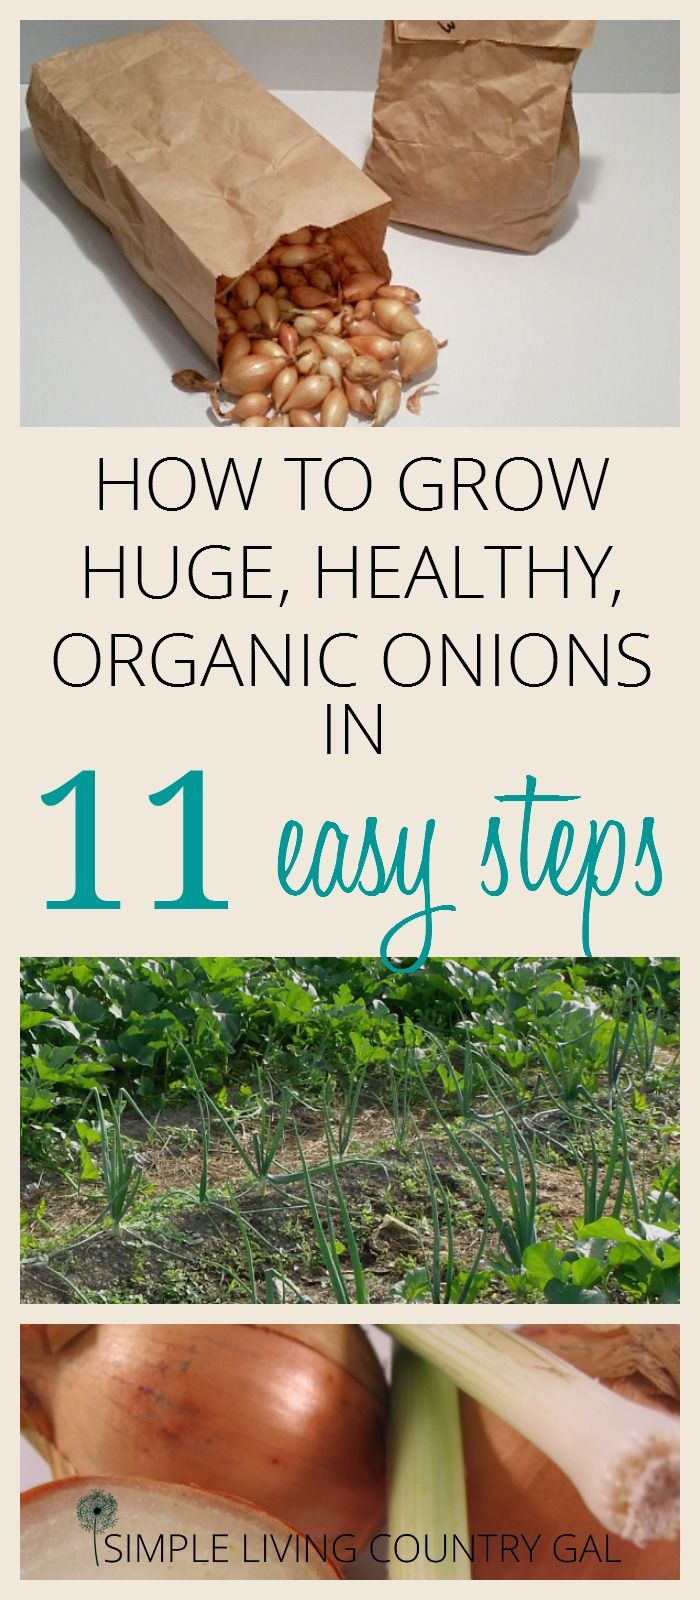 Growing onions is a great way to start your gardening journey. Simple and easy to do if you follow my tips. Grow huge organic onions every time! via @SLcountrygal